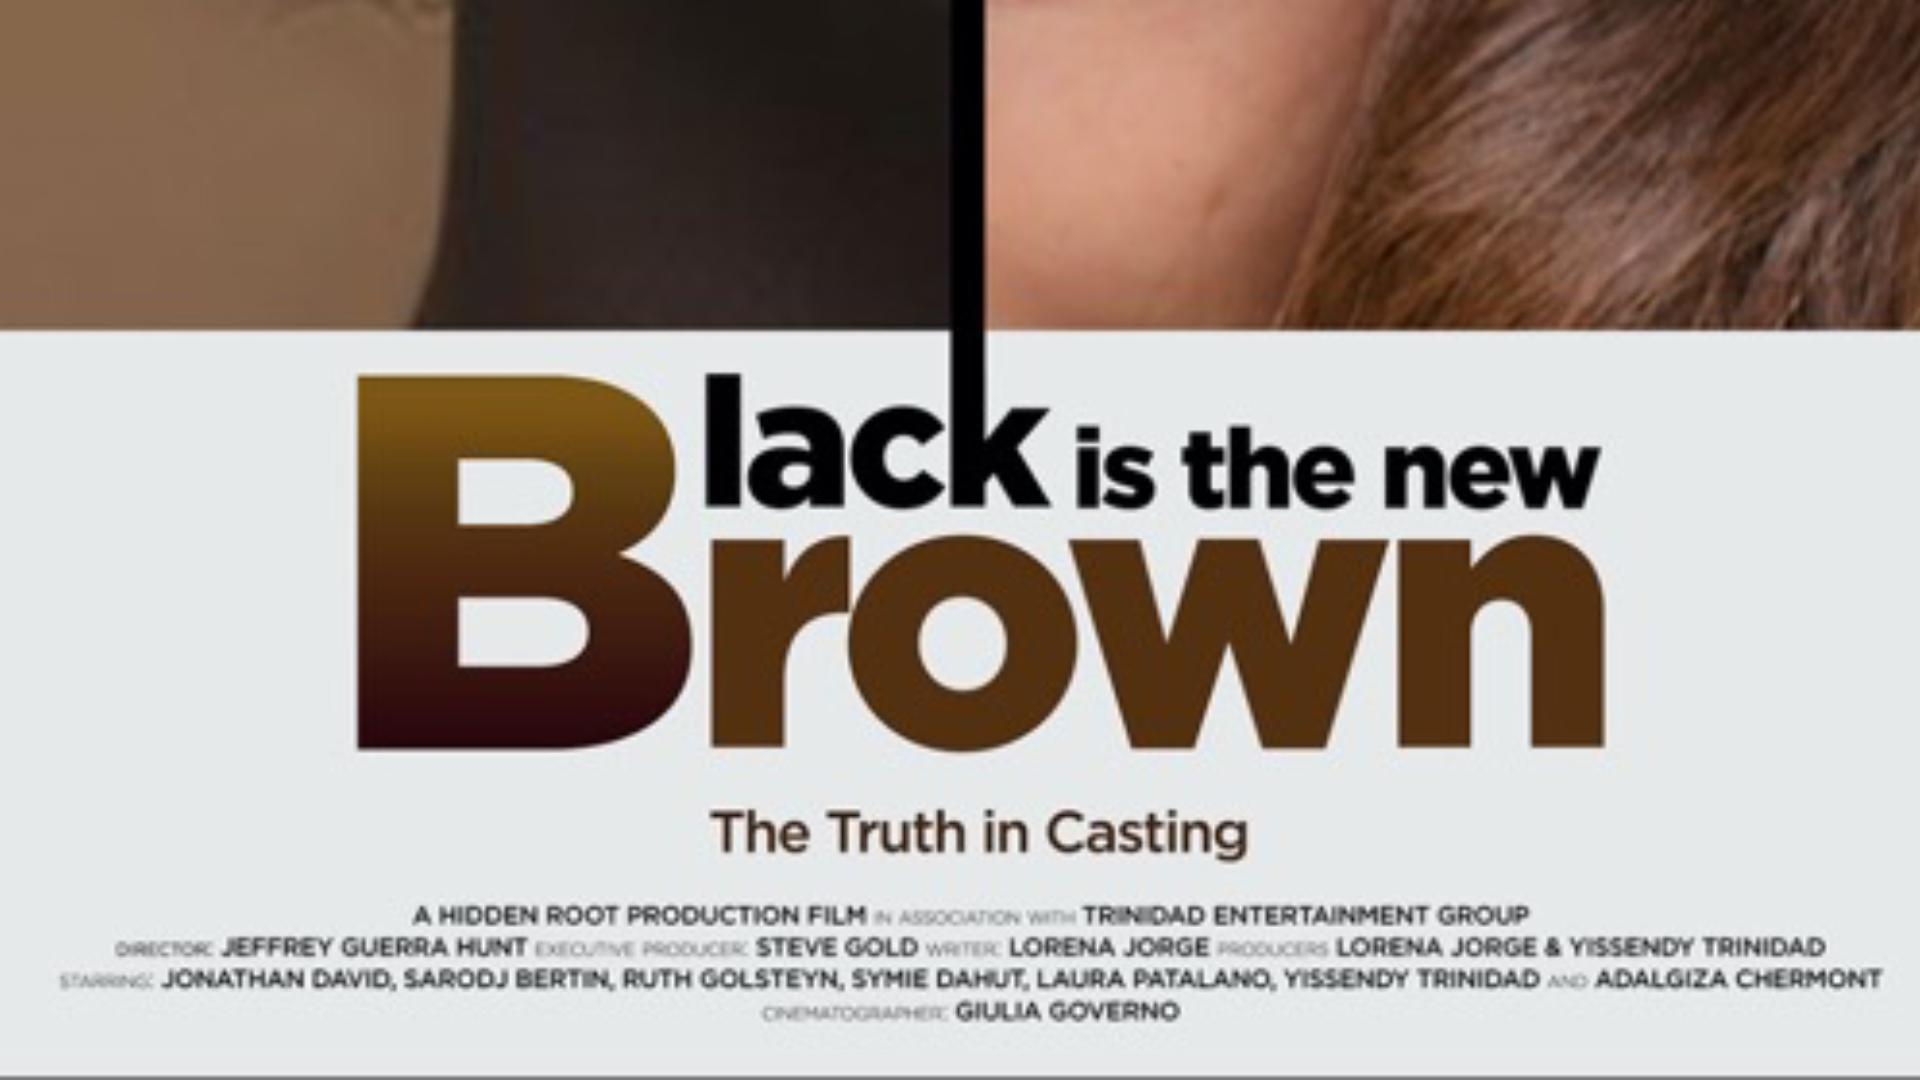 Black is the New Brown